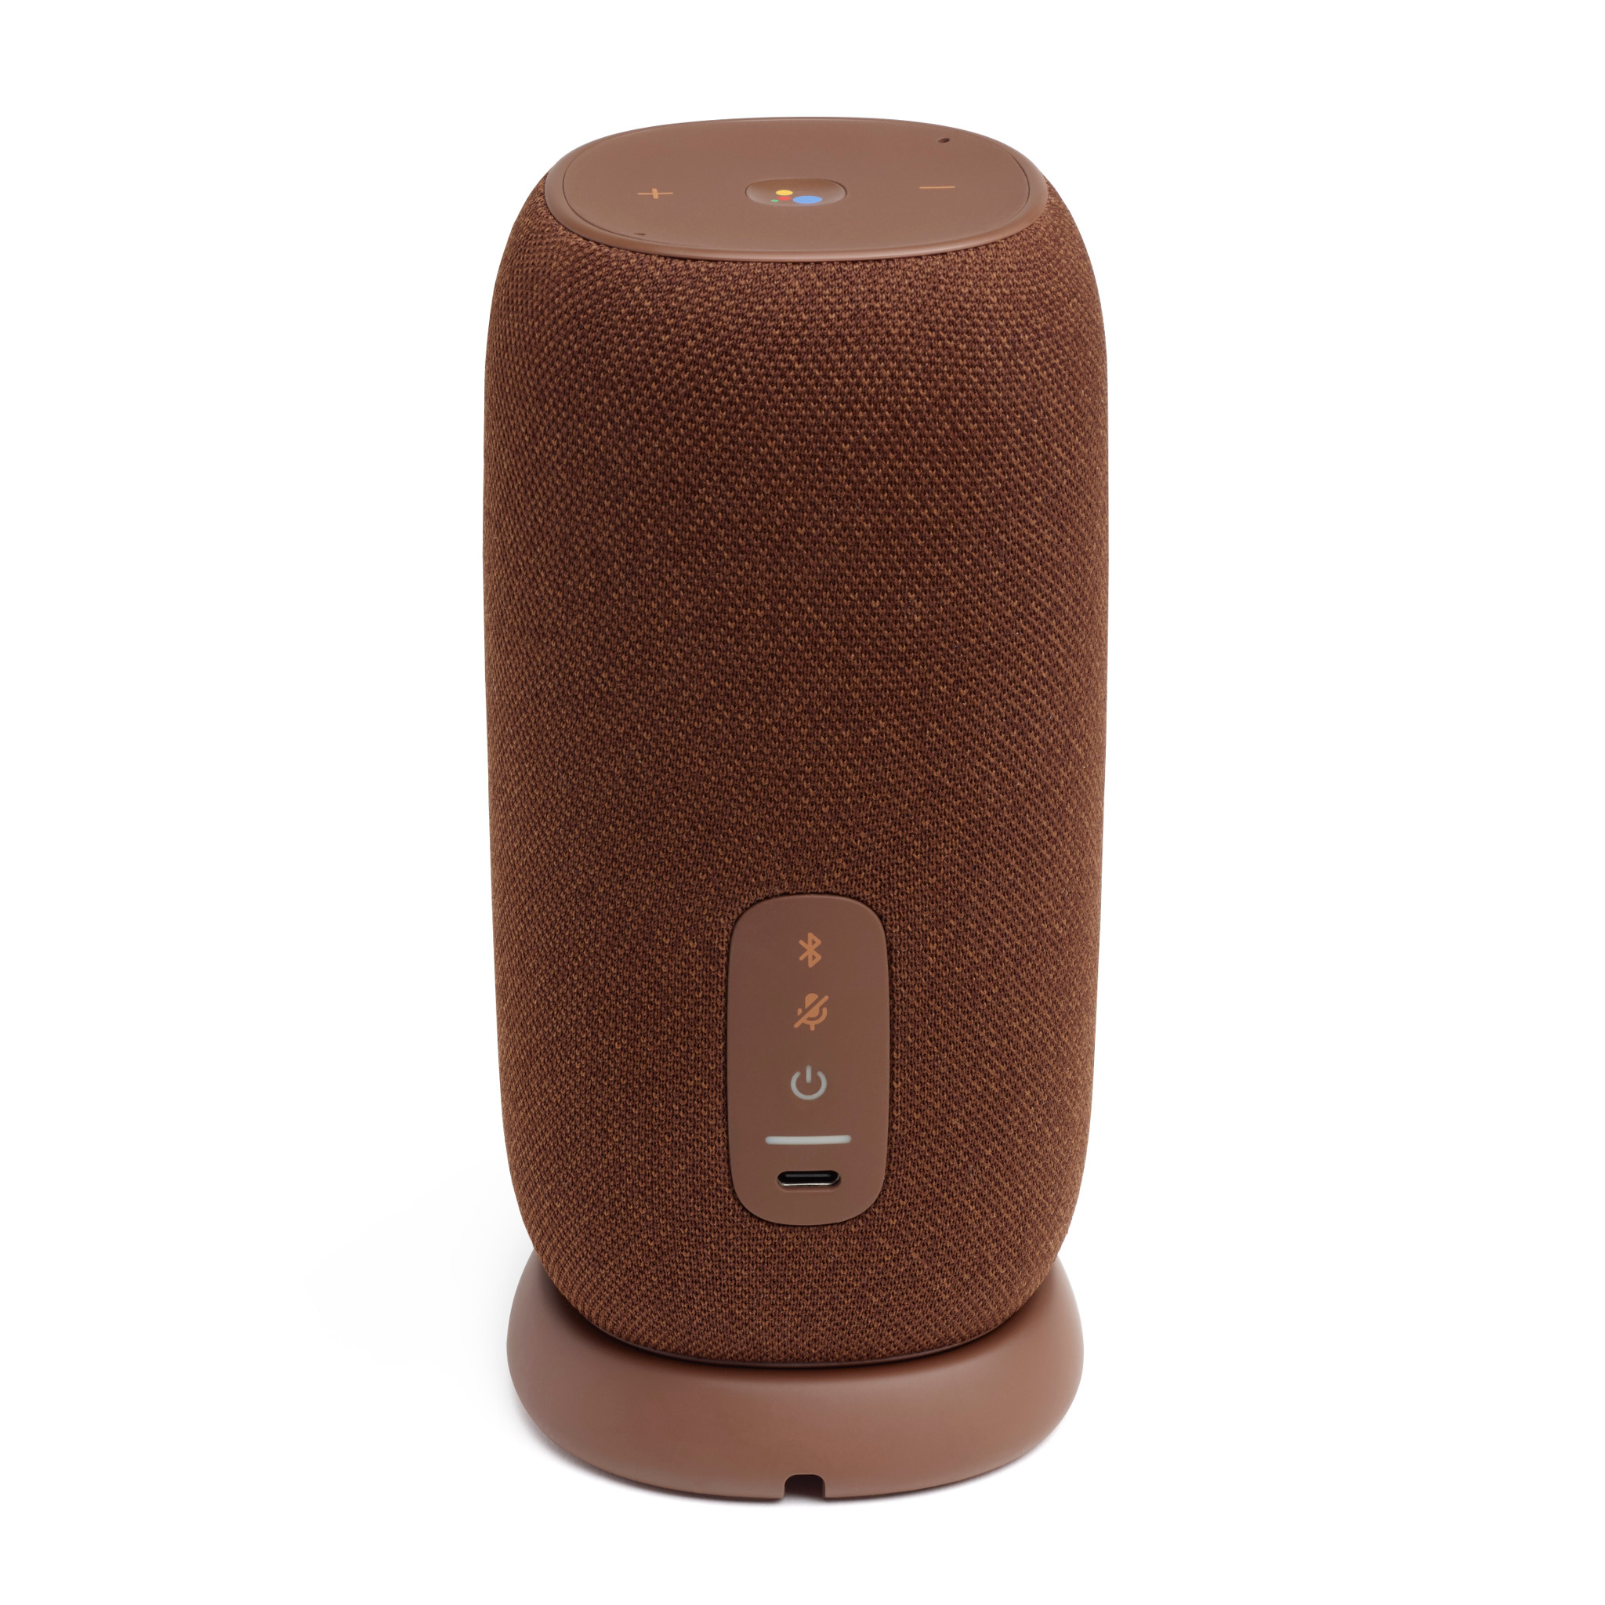 JBL Link Portable - Brown - Portable Wi-Fi Speaker - Back